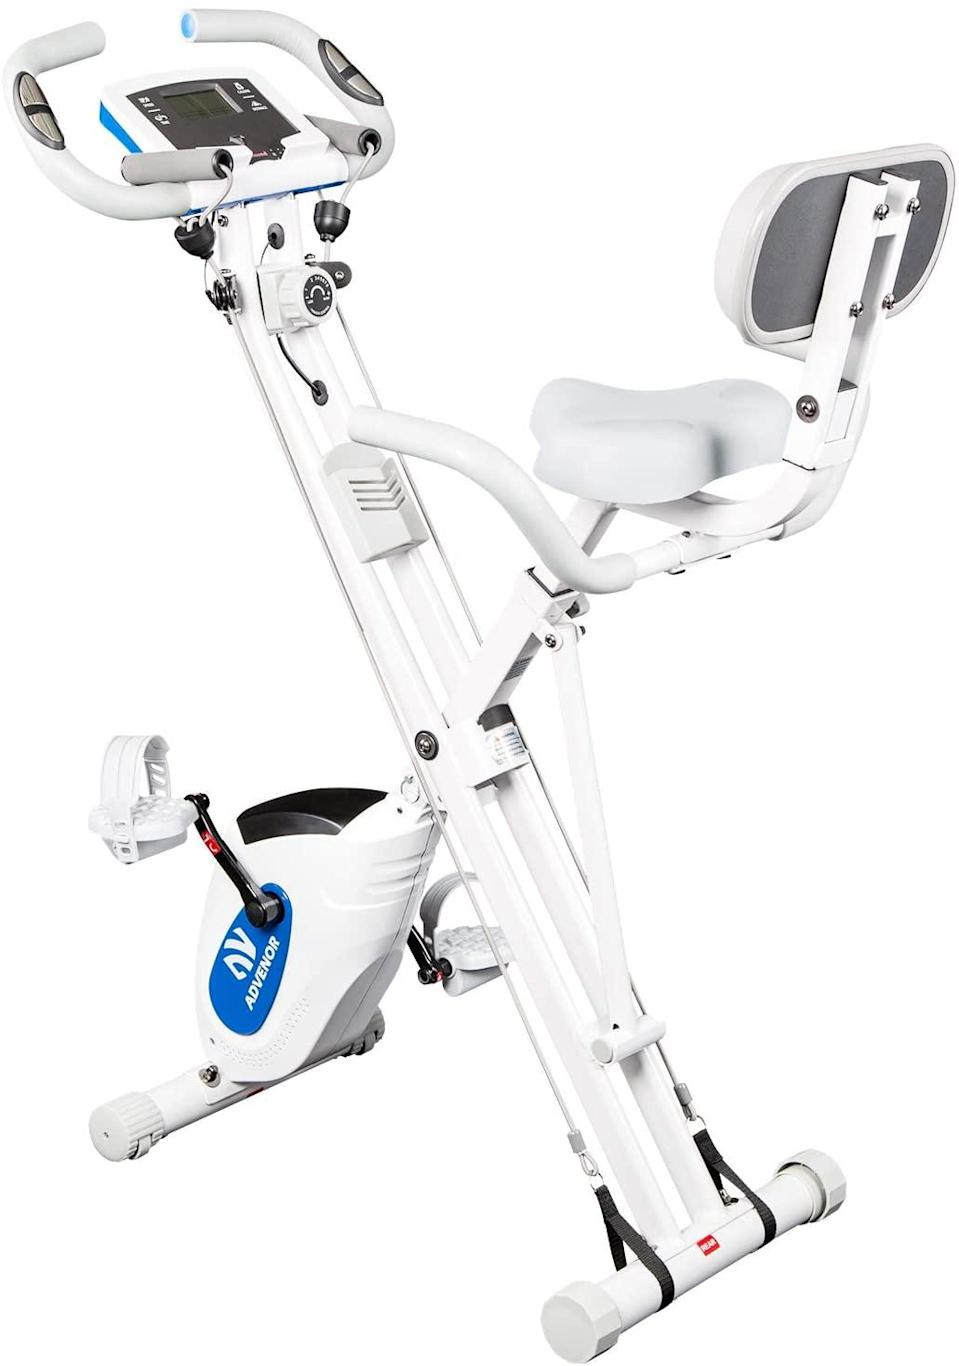 "<h2>20% Off ADVENOR Folding Stationary Exercise Bike</h2><br>This nifty folding exercise bike is the small-space and budget-friendly answer to the pricier at-home fitness options out there — and it's currently available for even more of a steal on Cyber Monday. One reviewer out of over 700 calls it the ""Best workout I've had!""; another states, ""This bike is sturdy, supports up to 300 lbs and is built very well and easy to put together. Unfortunately, since the bike folds for storage or to be moved around, the crossbars are about 18-20 inches high. If you have limitations or arthritis you will not be able to get on the bike, if you cannot lift your legs real high. I was so disappointed in myself for not seeing this until it was being put together. This is a superb quality bike for a great price!""<br><br><strong>ADVENOR</strong> Folding Magnetic Stationary Exercise Bike, $, available at <a href=""https://amzn.to/3og7caZ"" rel=""nofollow noopener"" target=""_blank"" data-ylk=""slk:Amazon"" class=""link rapid-noclick-resp"">Amazon</a>"